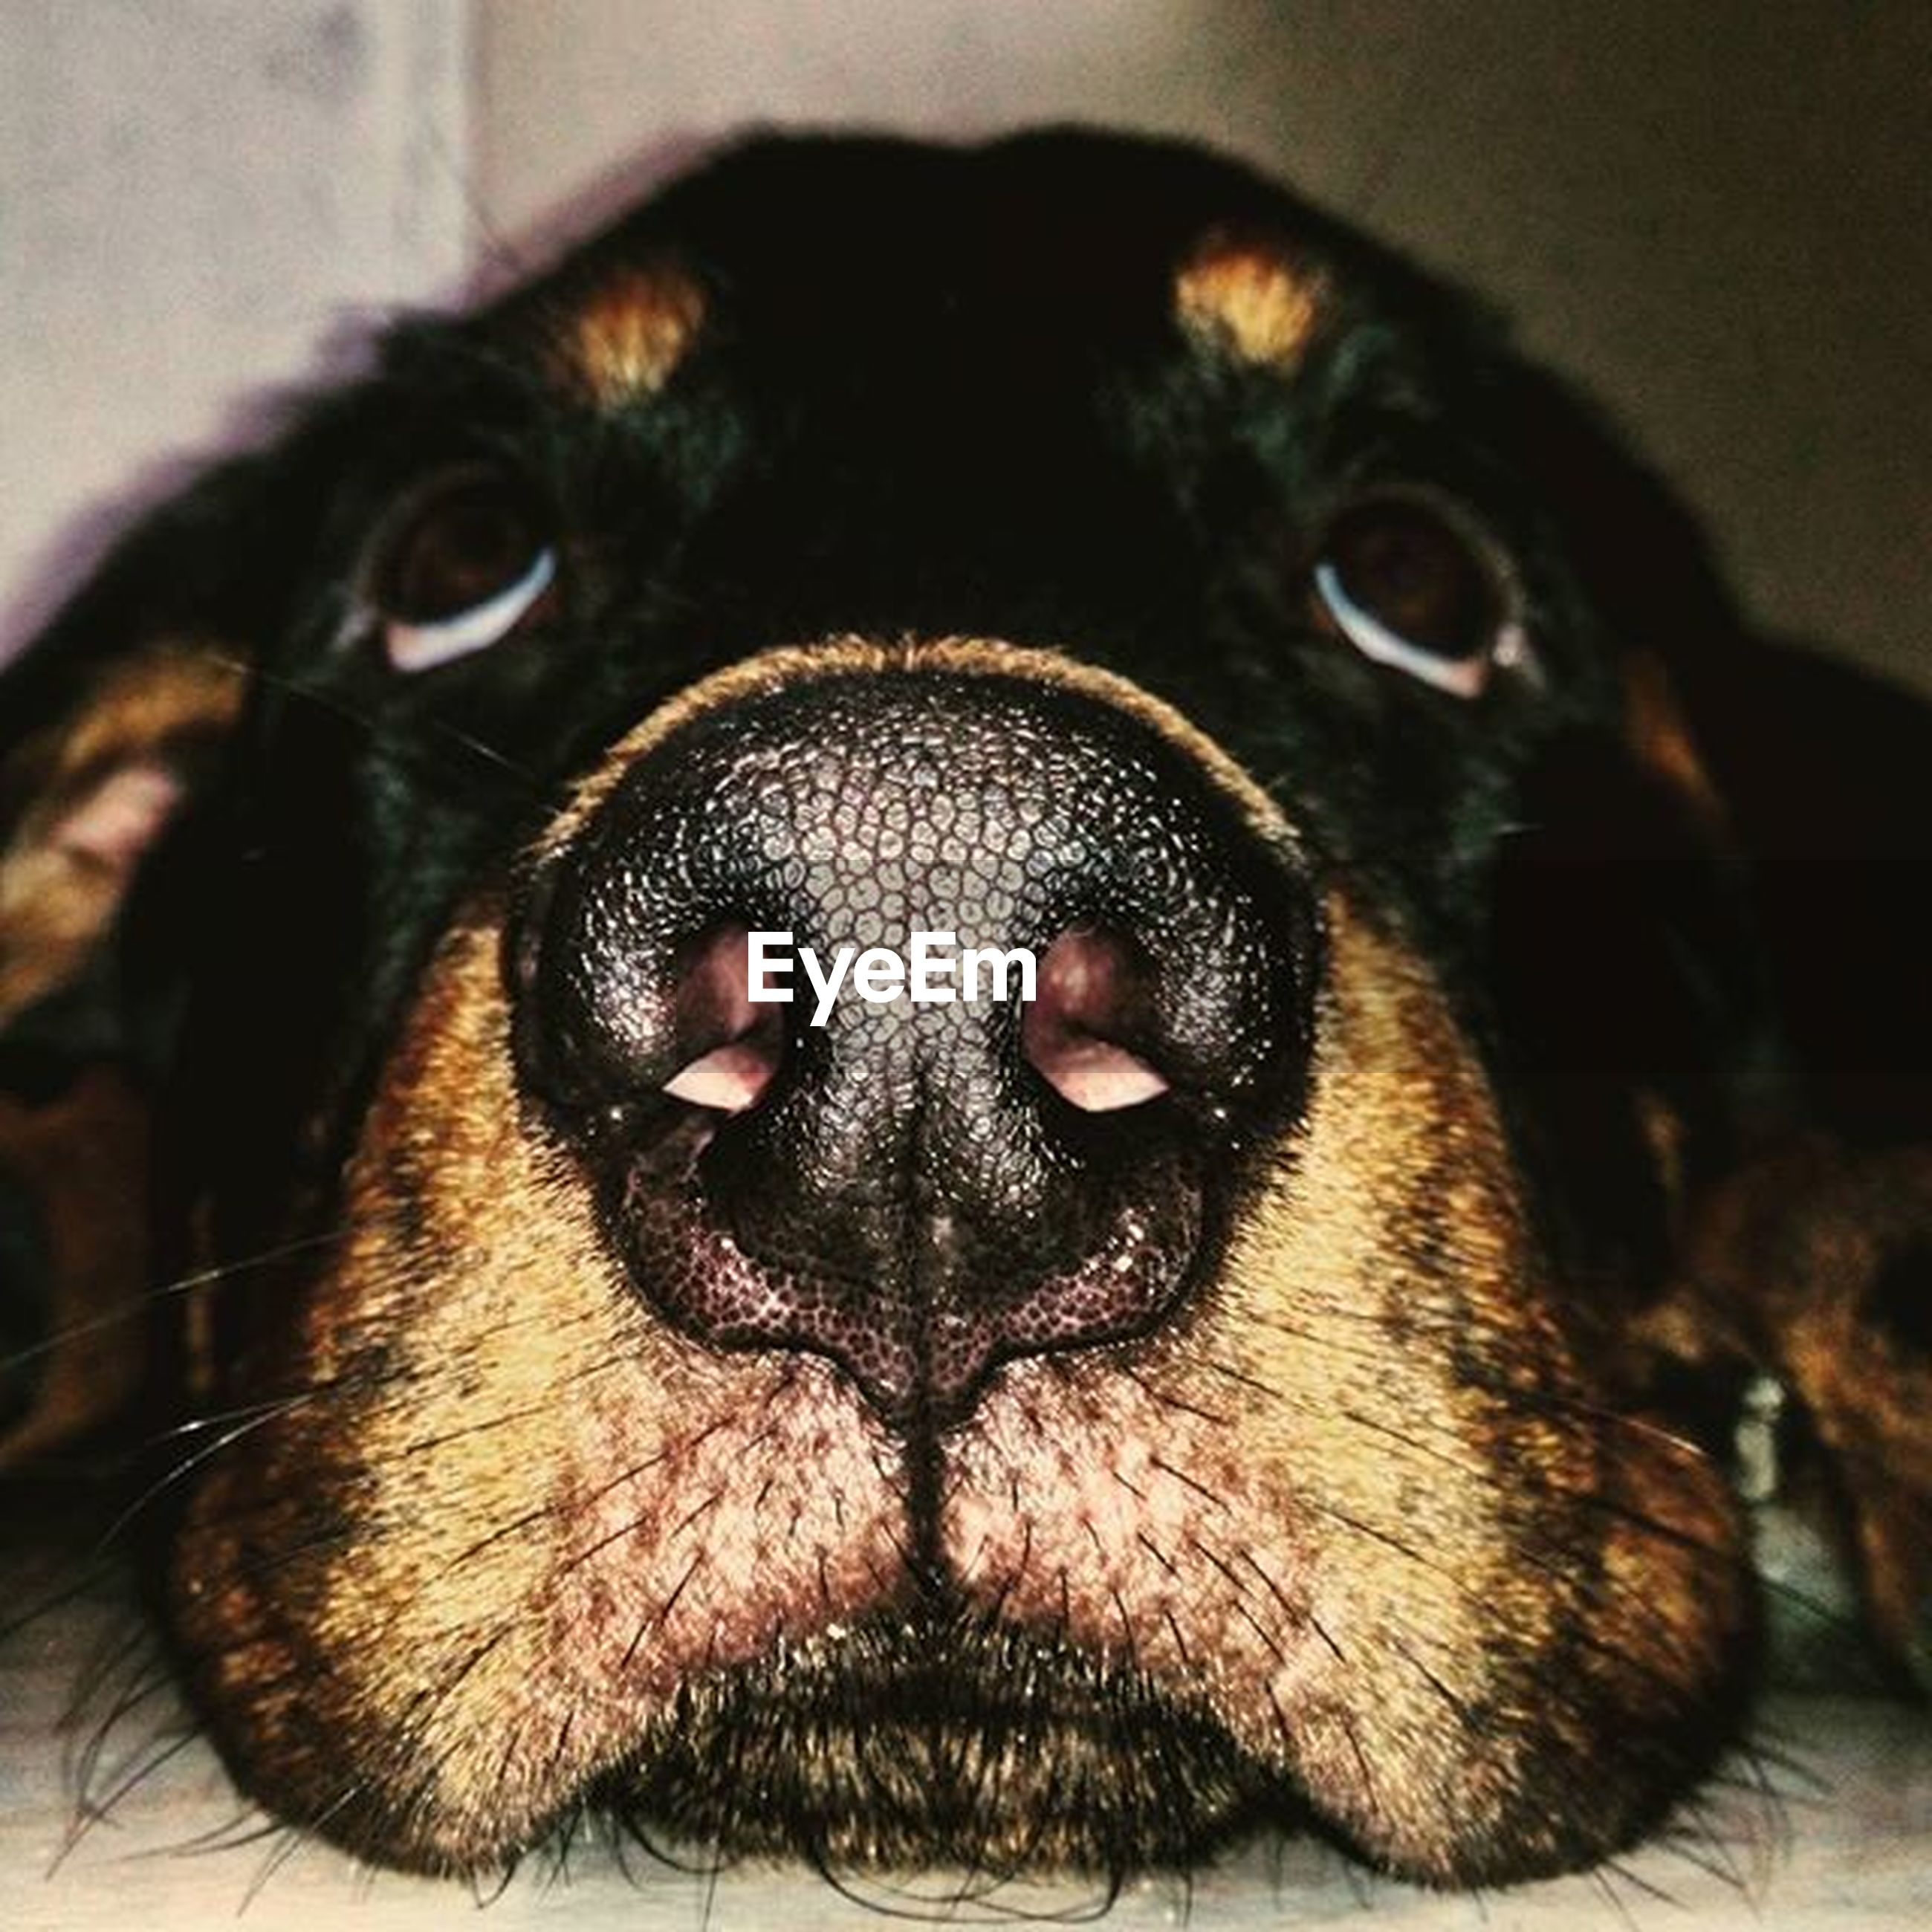 dog, animal themes, pets, domestic animals, one animal, indoors, mammal, portrait, animal head, close-up, looking at camera, animal body part, snout, animal nose, relaxation, no people, home interior, focus on foreground, front view